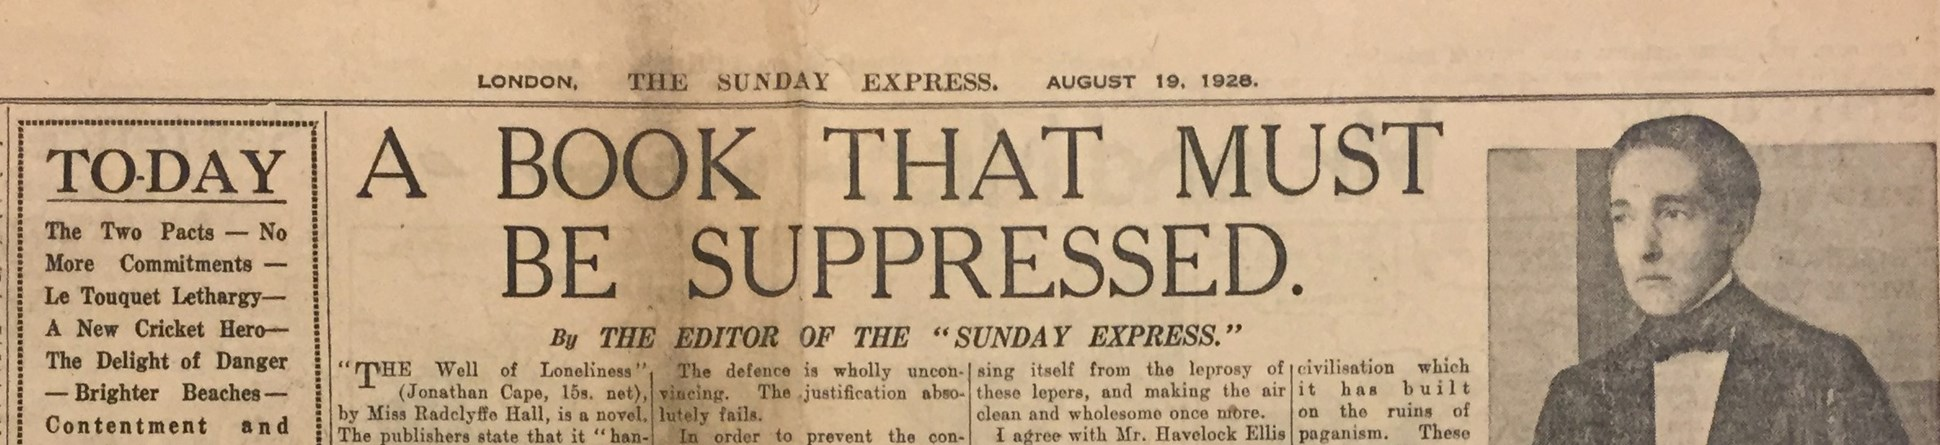 'A Book That Must Be Suppressed'. The Sunday Express editorial on Radclyffe Hall's The Well of Loneliness, 1928